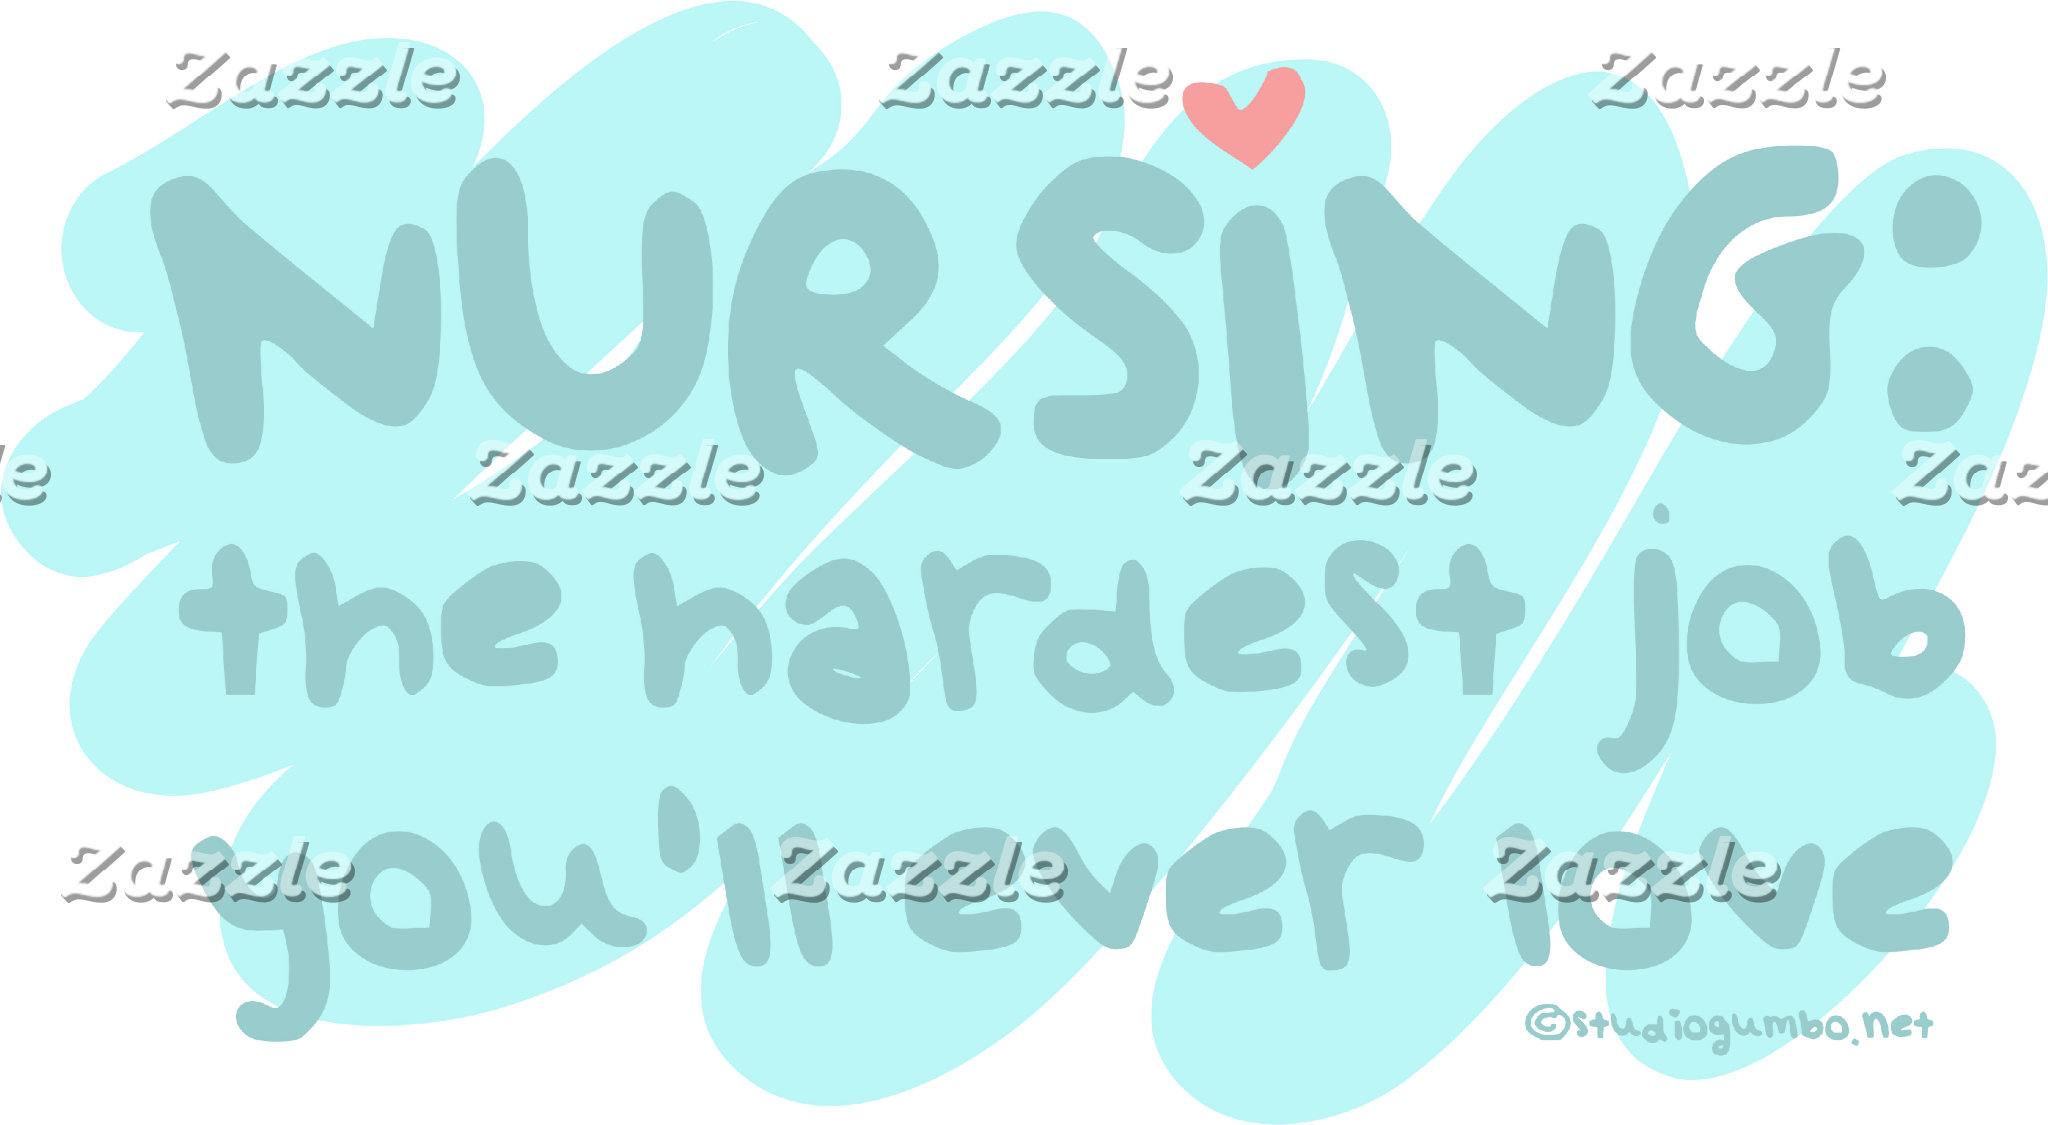 Nursing - the Hardest Job